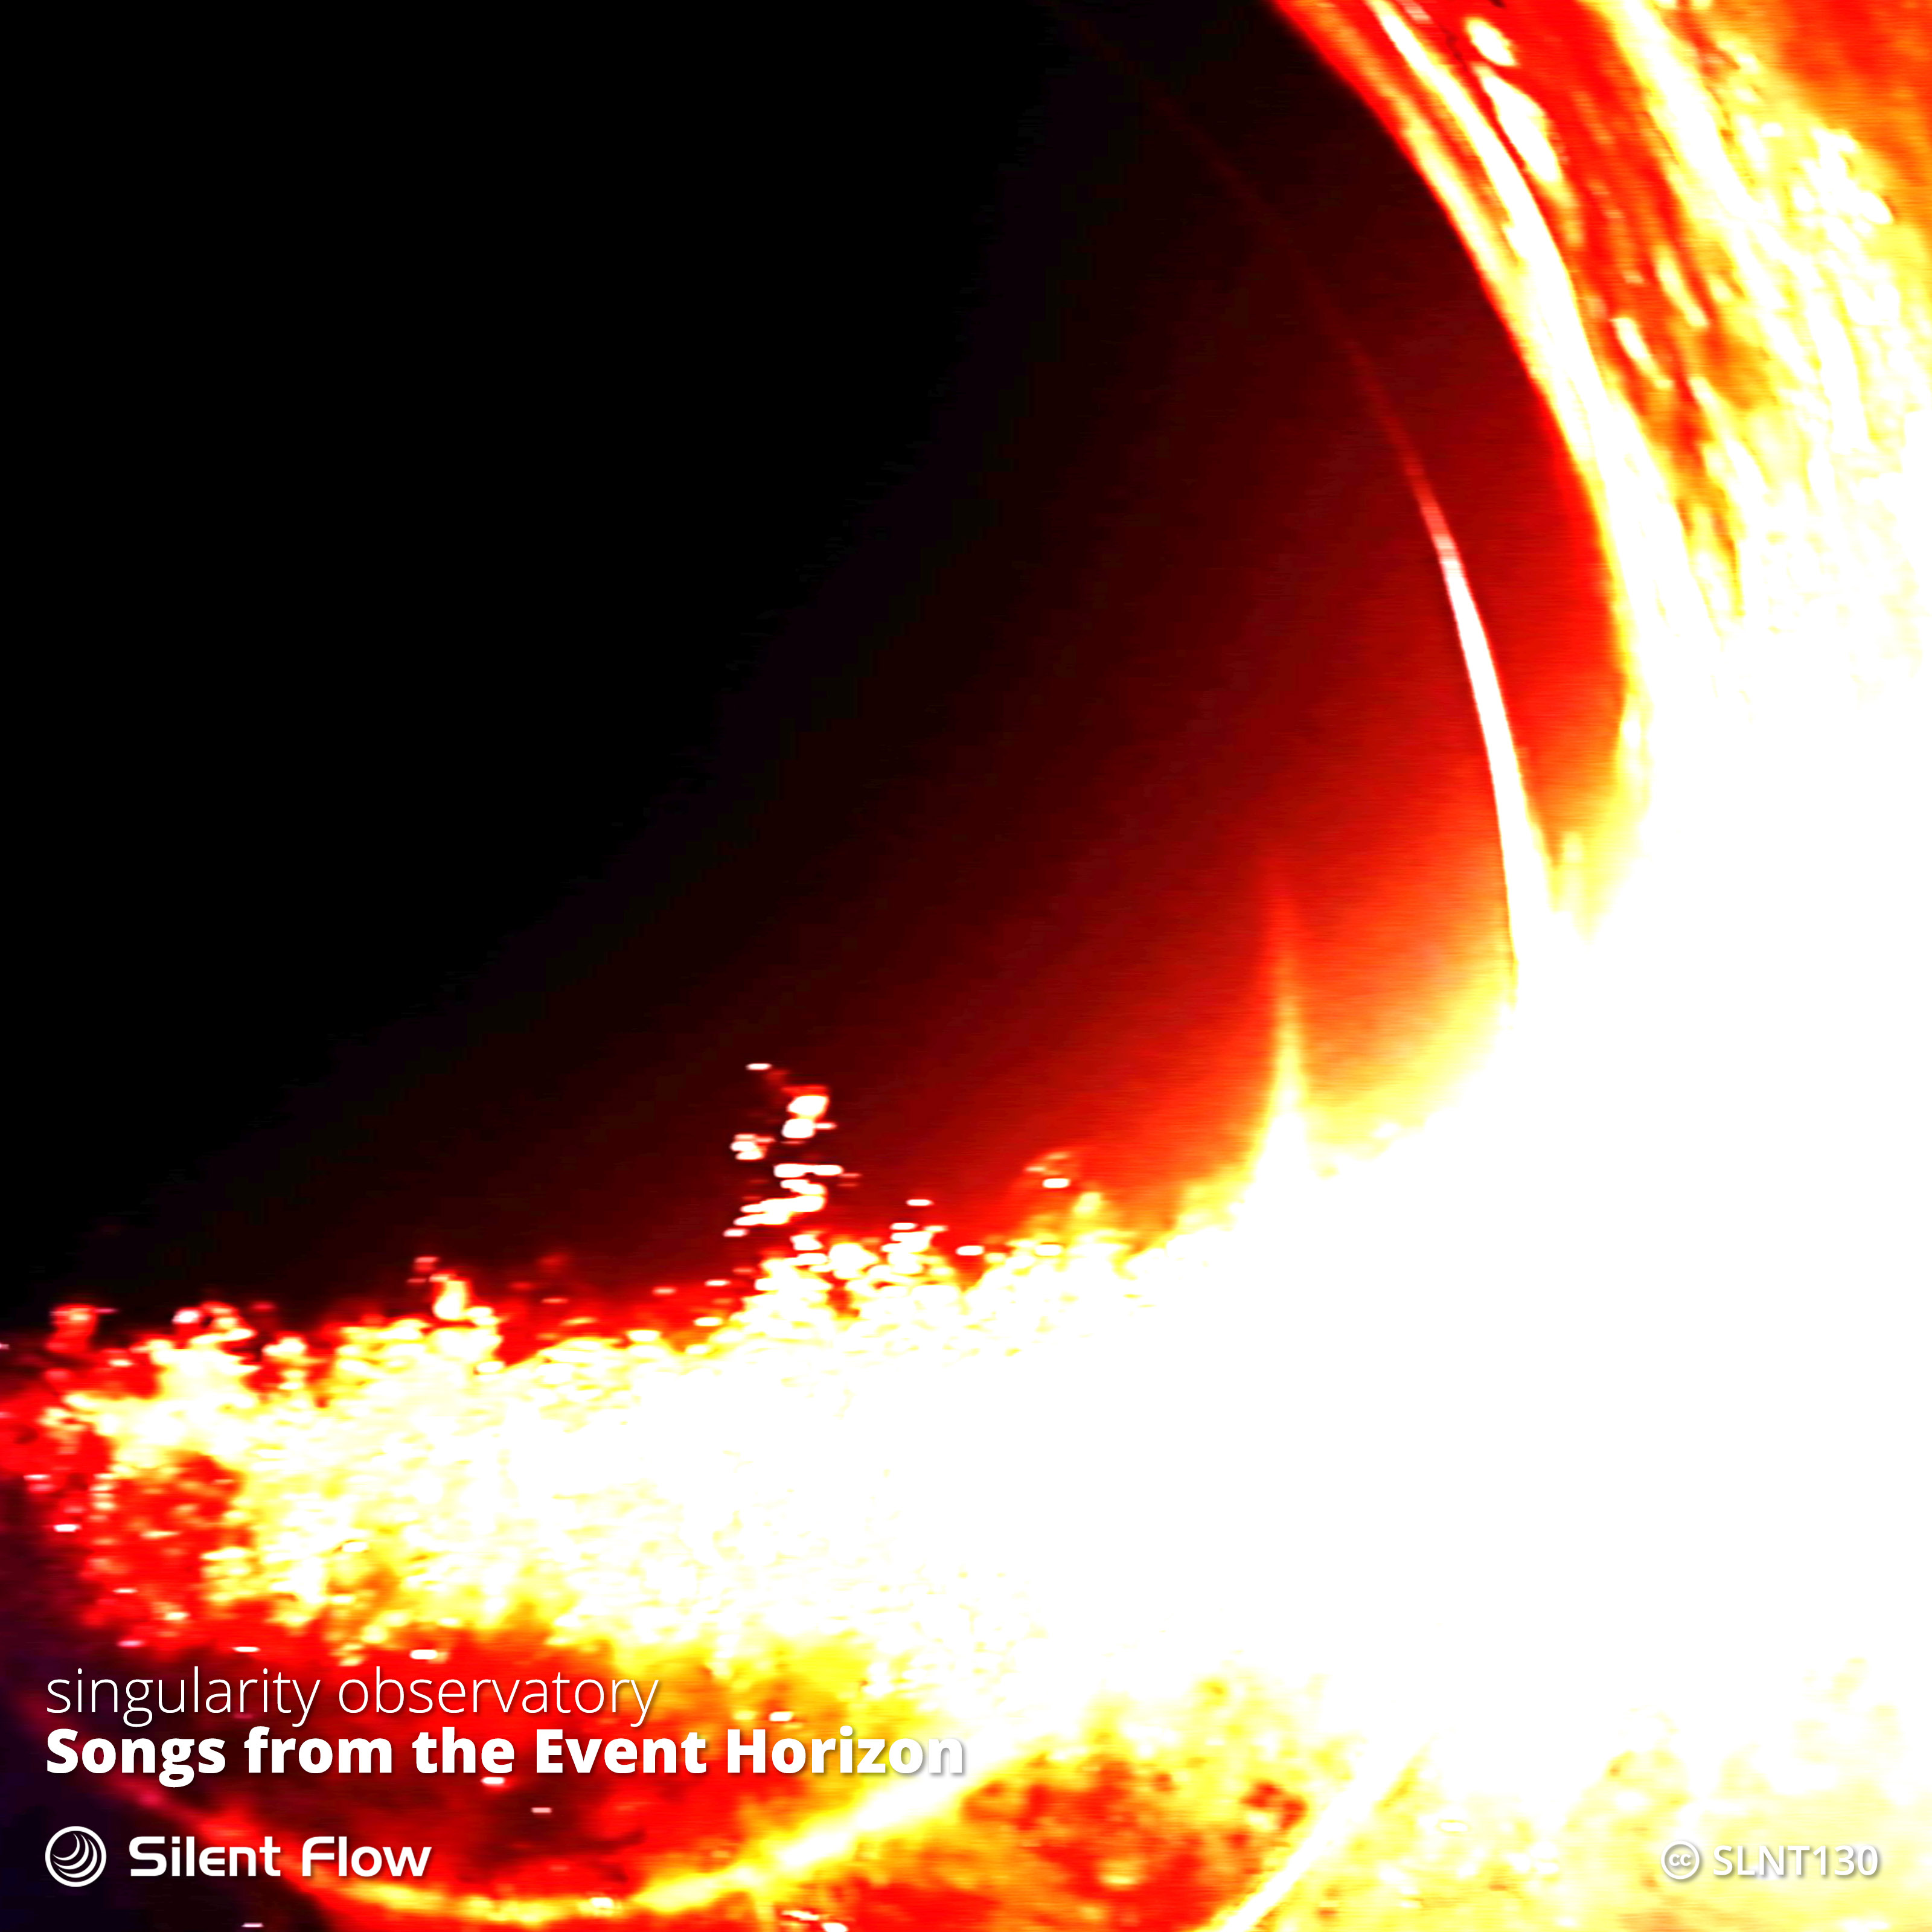 singularity observatory – Songs from the Event Horizon